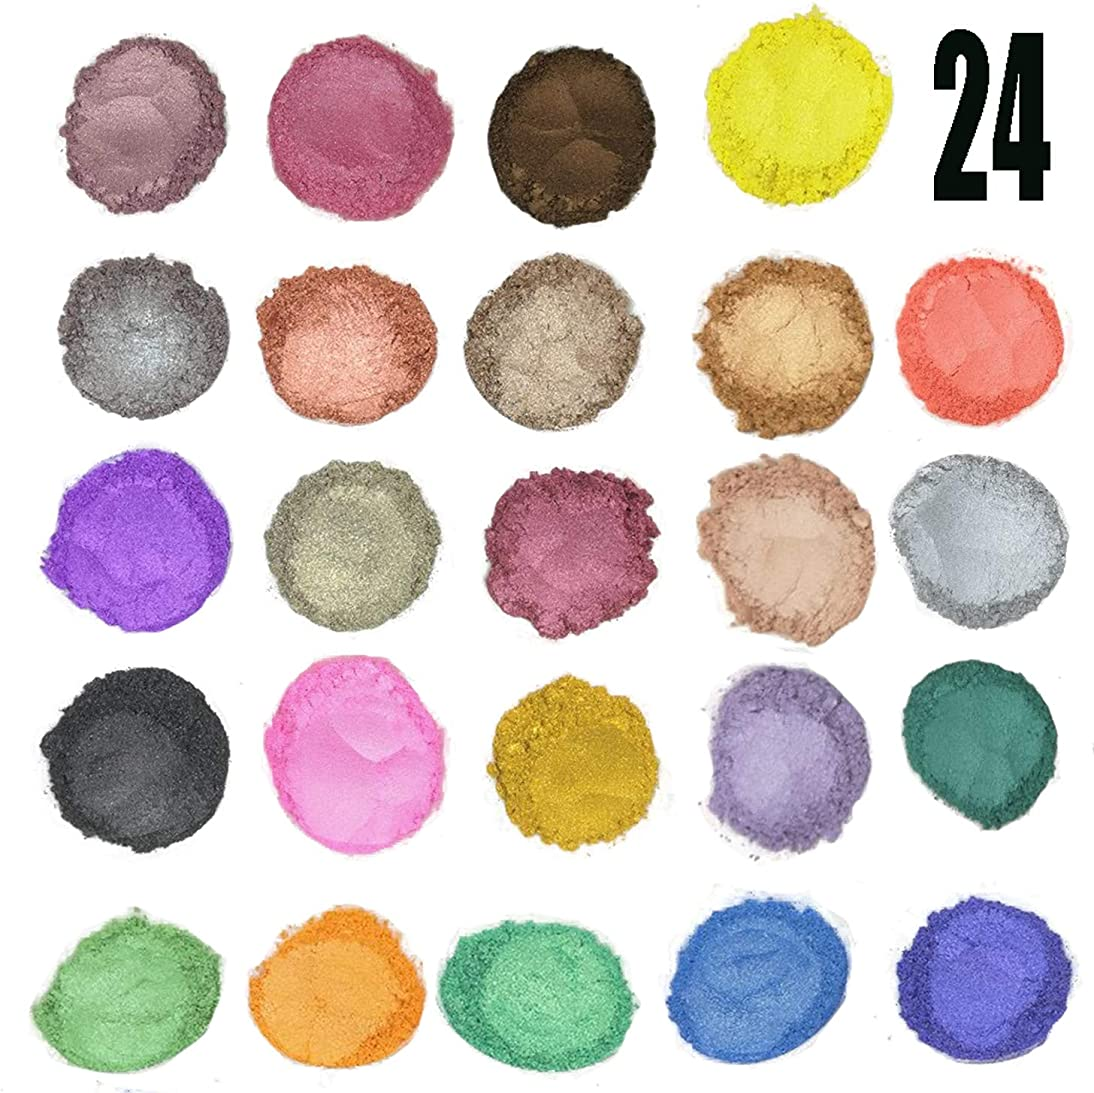 24 Color Pigments Shimmer Mica Powder - DIY Soap Making, Candle Making,Resin Dye, Mica Powder Organic for Soap Molds (5 Grams Each, 120 Grams Total)